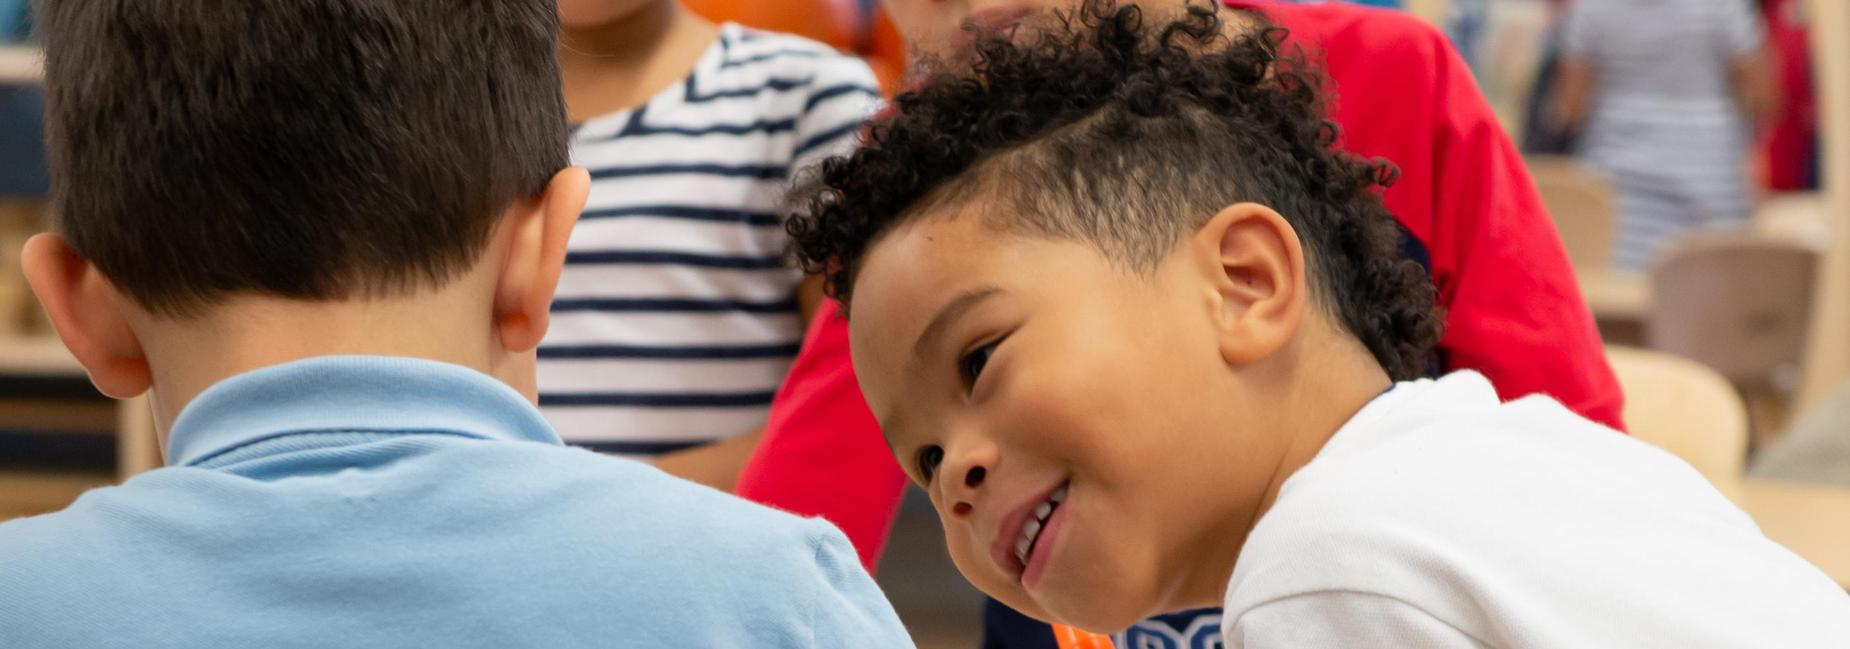 A pre-k student leaning over and smiling at another pre-k student.